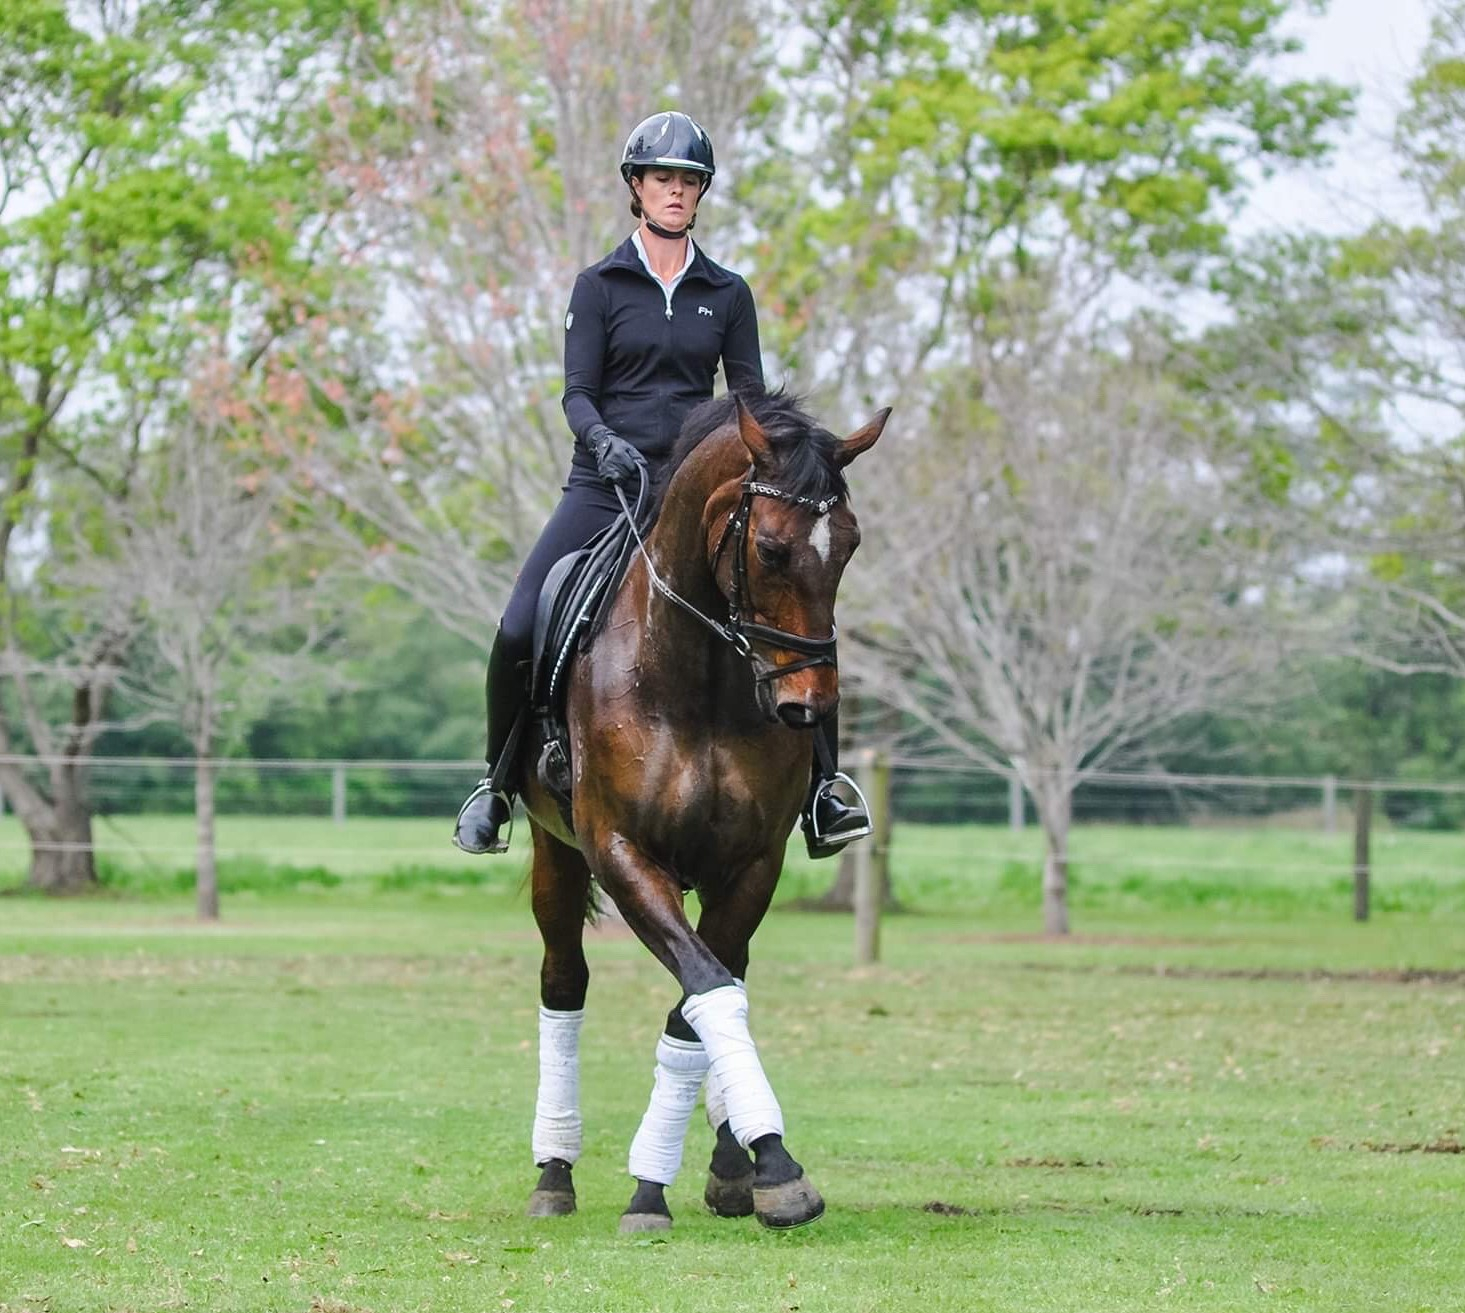 Warmblood Gelding 16.3hh, 9 yrs by Welfenadel (Imp)